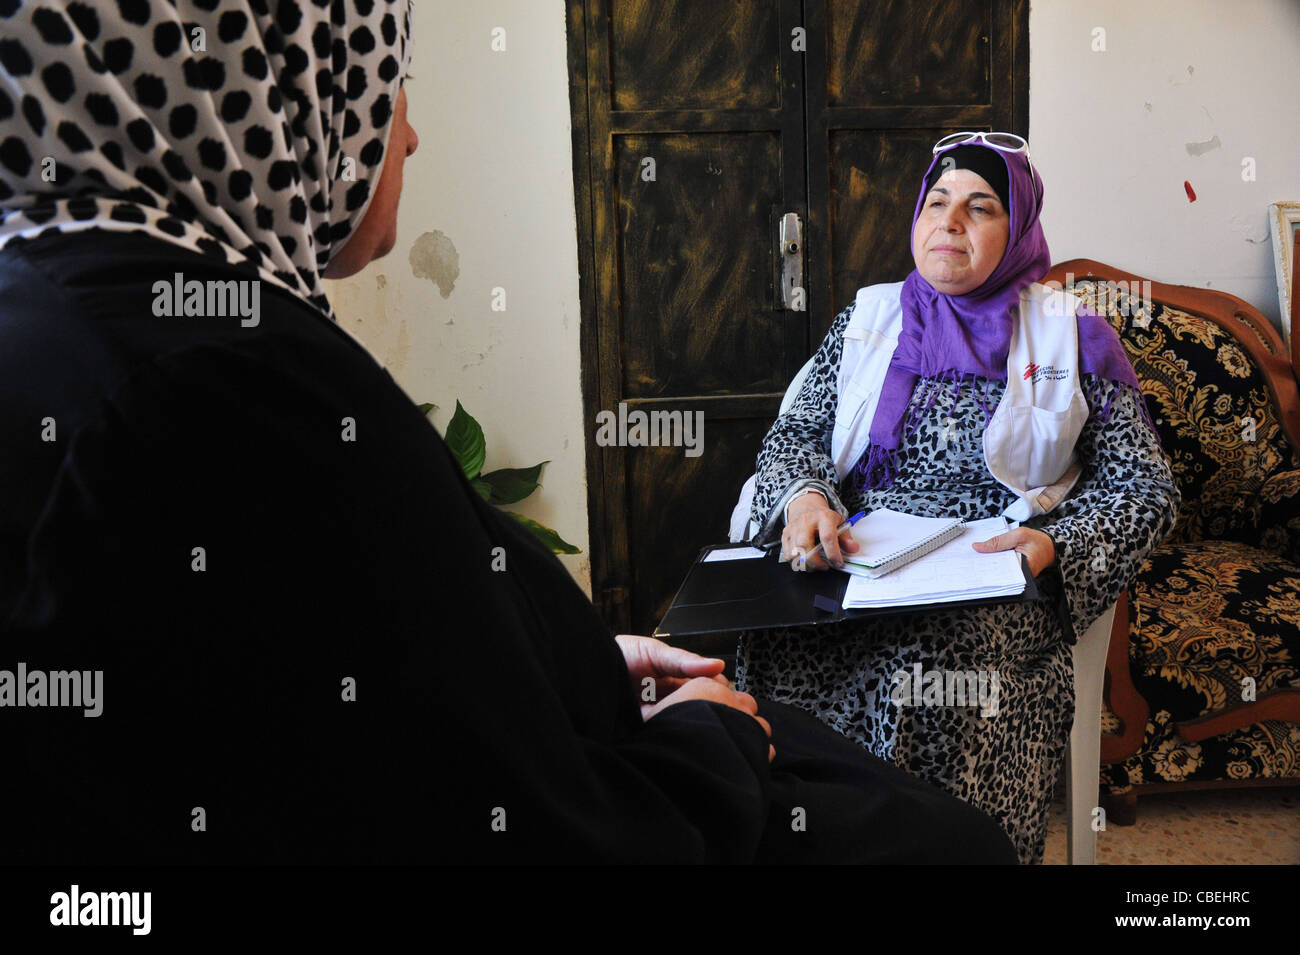 Palestinian families traumatized by the coming of the Israeli colonists., The psychologist is listening to the testimony - Stock Image